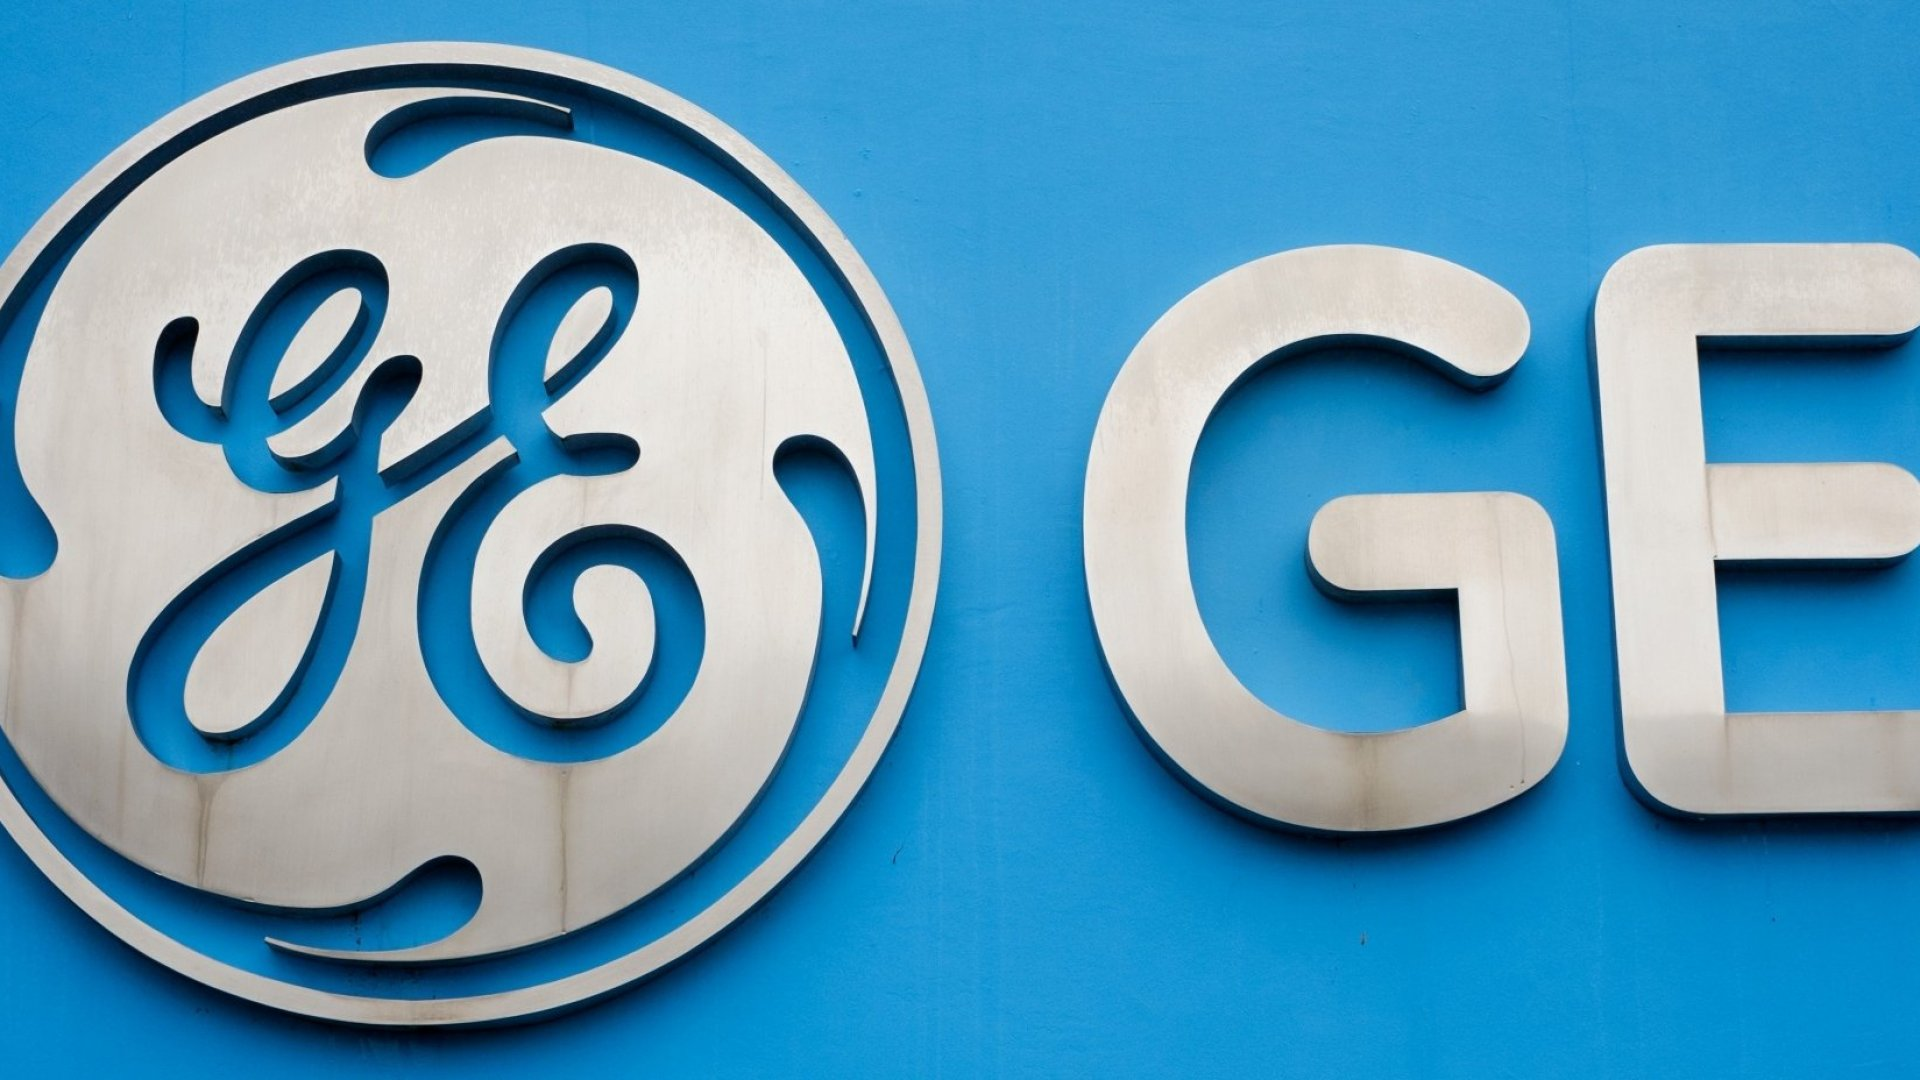 5 New GE Initiatives That Will Attract and Retain Millennials